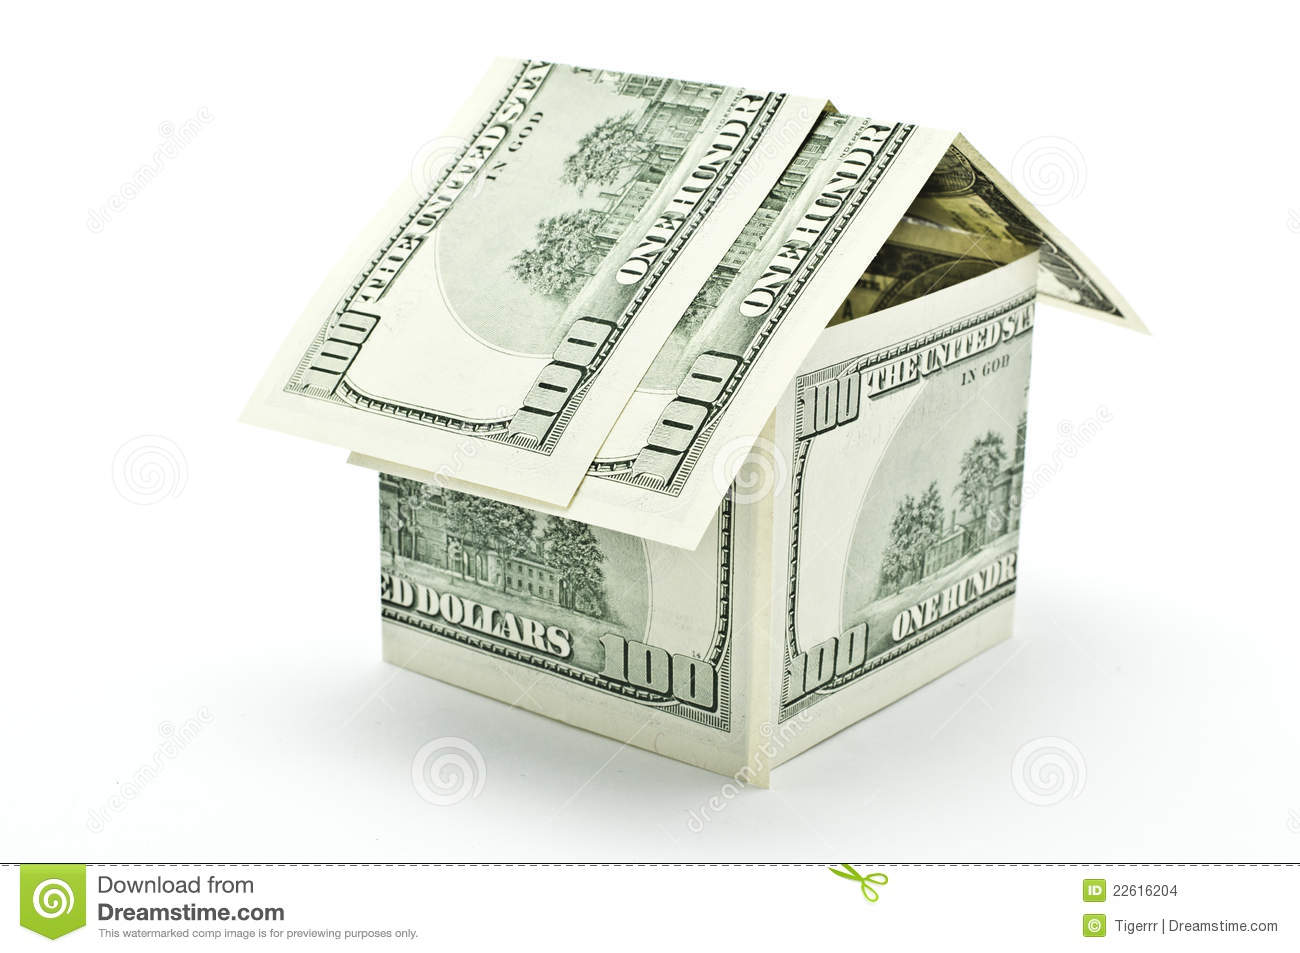 100 dollars money house stock images image 22616204 for Build a house for under 5000 dollars